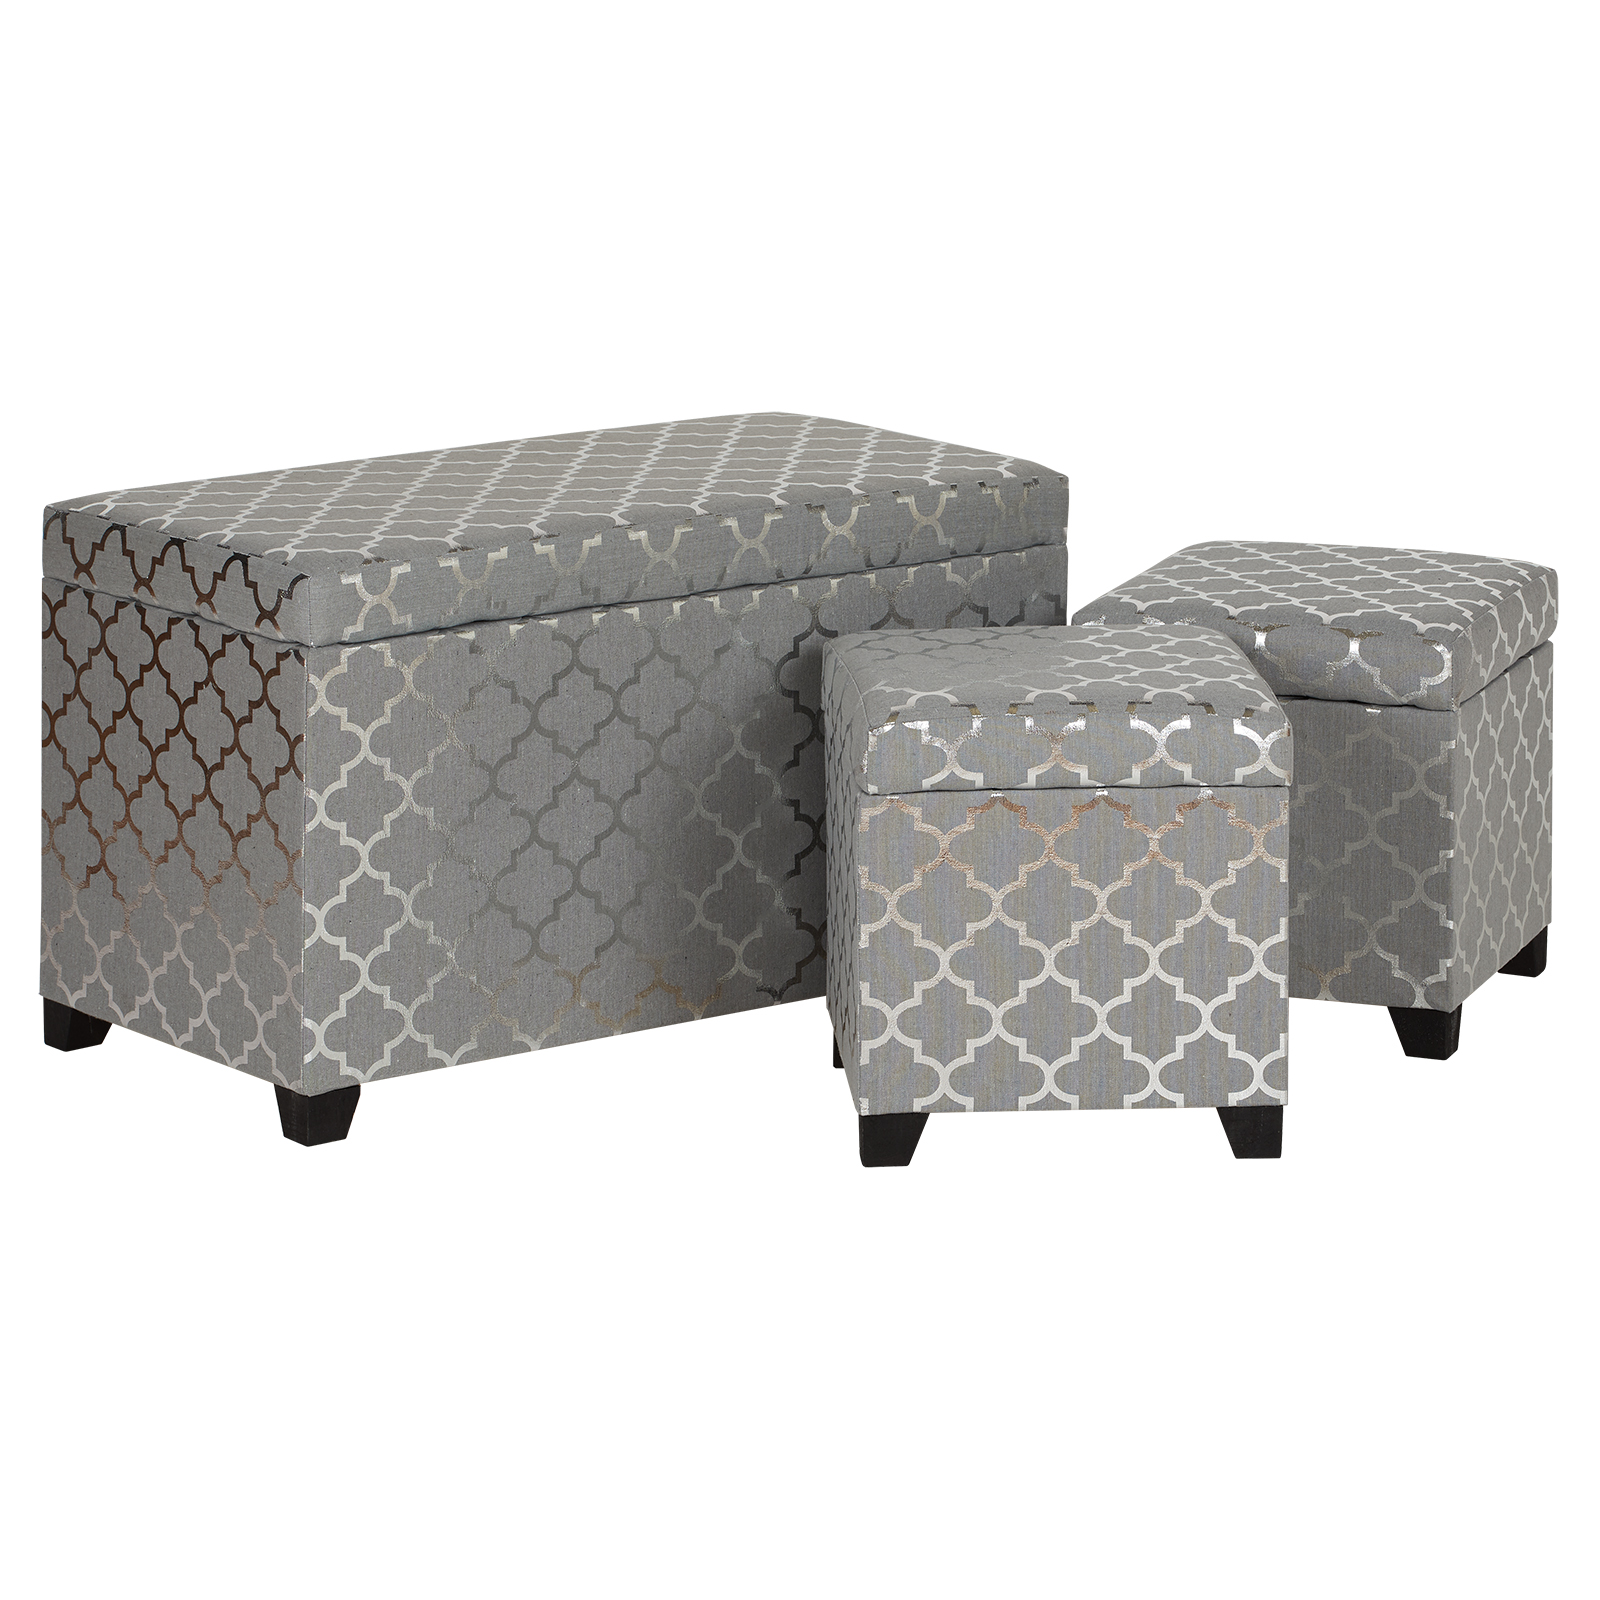 Hartleys Grey Amp Silver Storage Ottomans Set Of 3 Ottoman